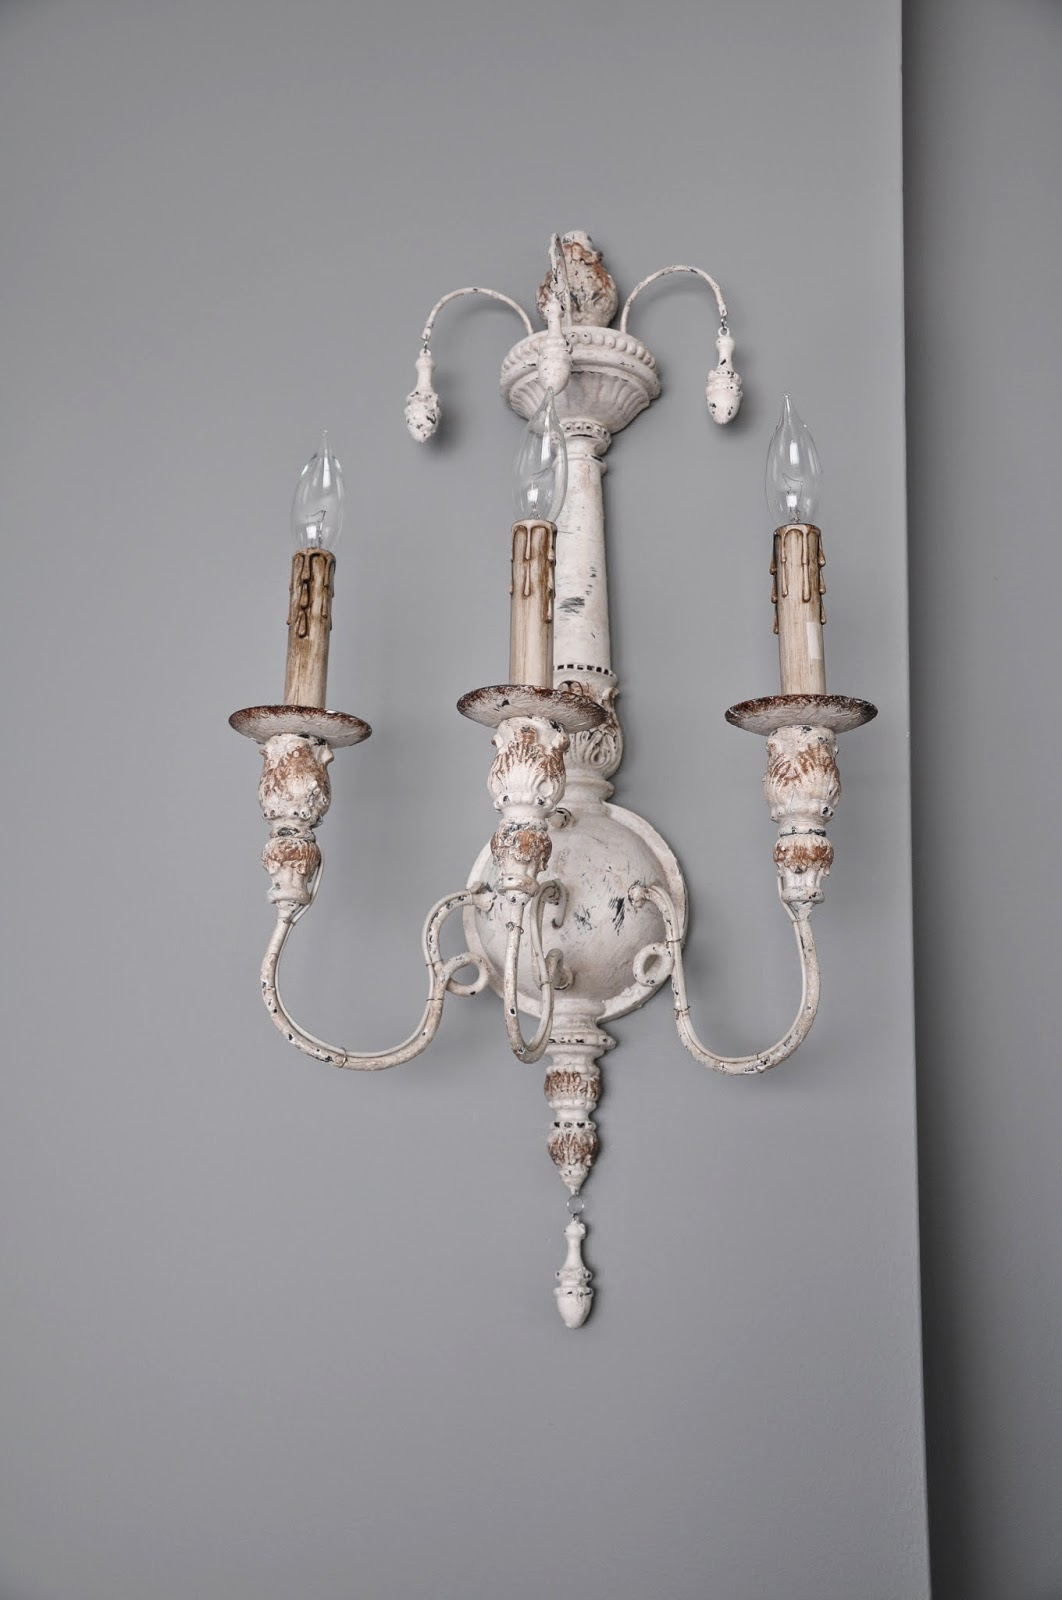 Serendipity Refined Blog French Country Light Fixtures for the Farmhouse Din